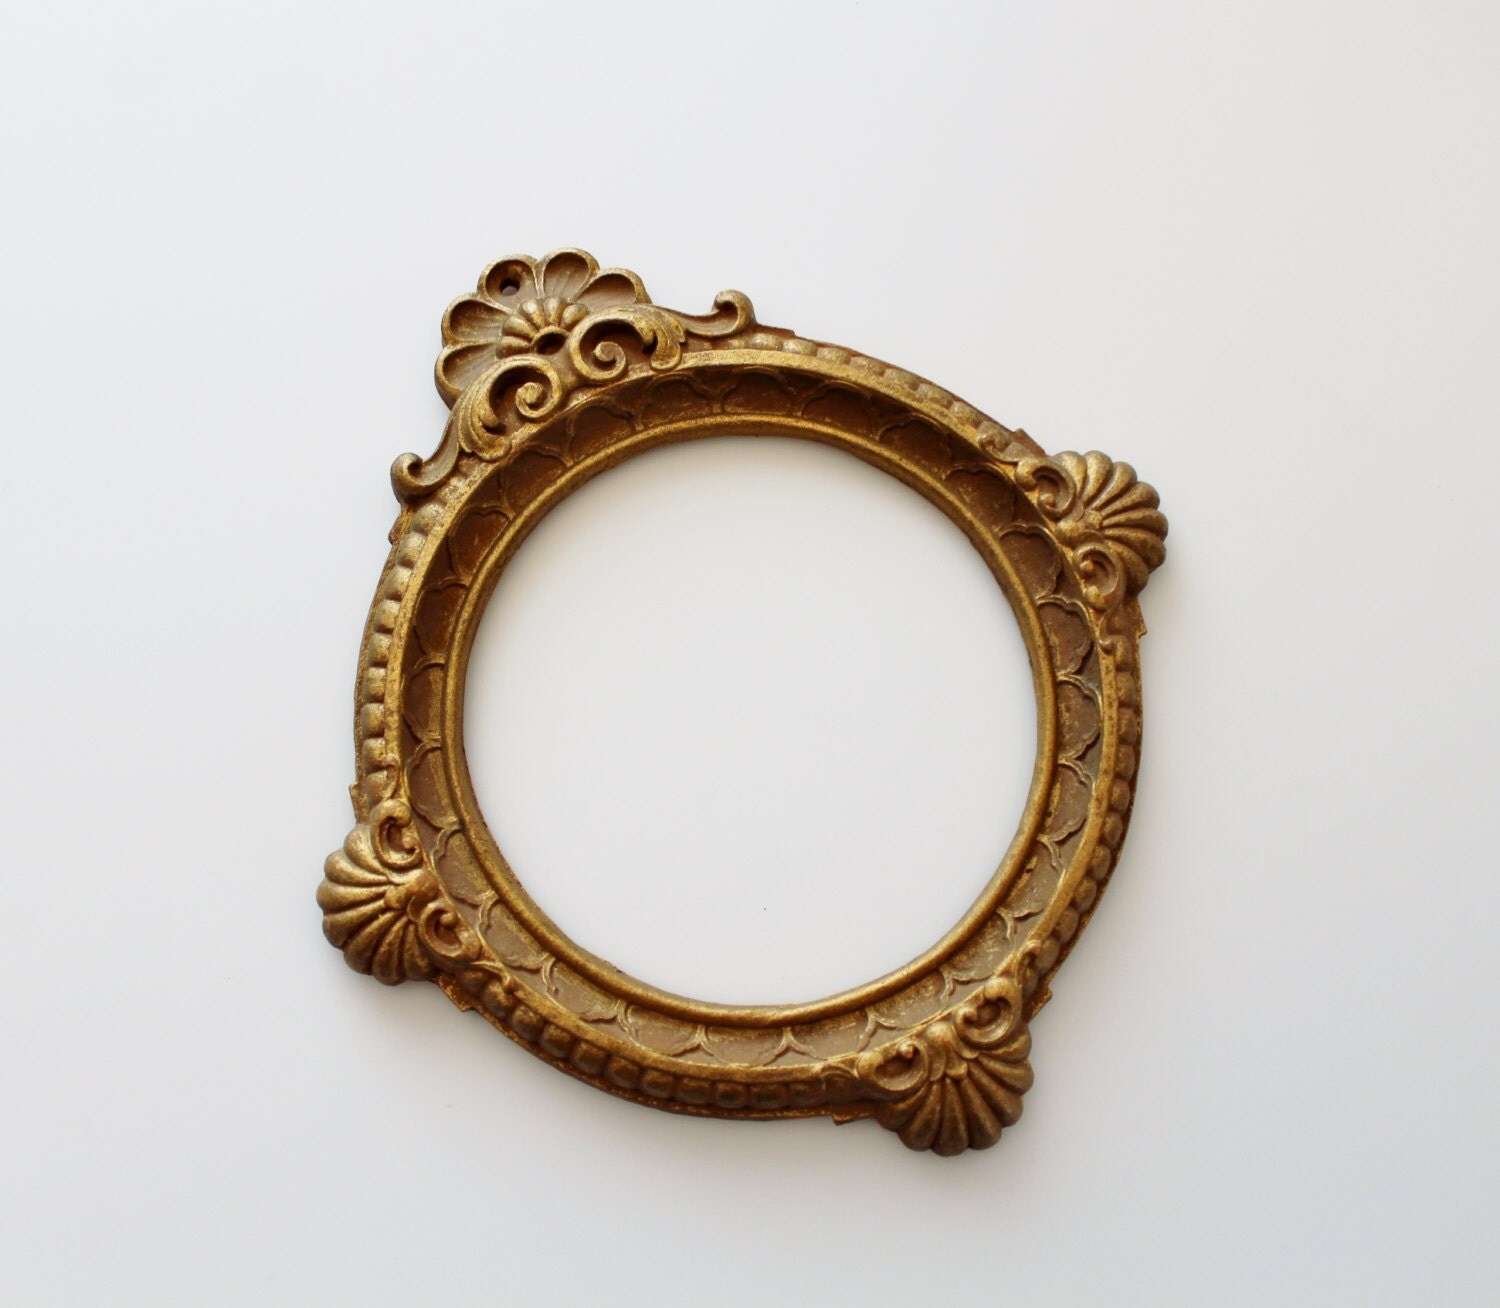 Vintage ornate round picture frame syroco style small wooden for Small vintage style picture frames